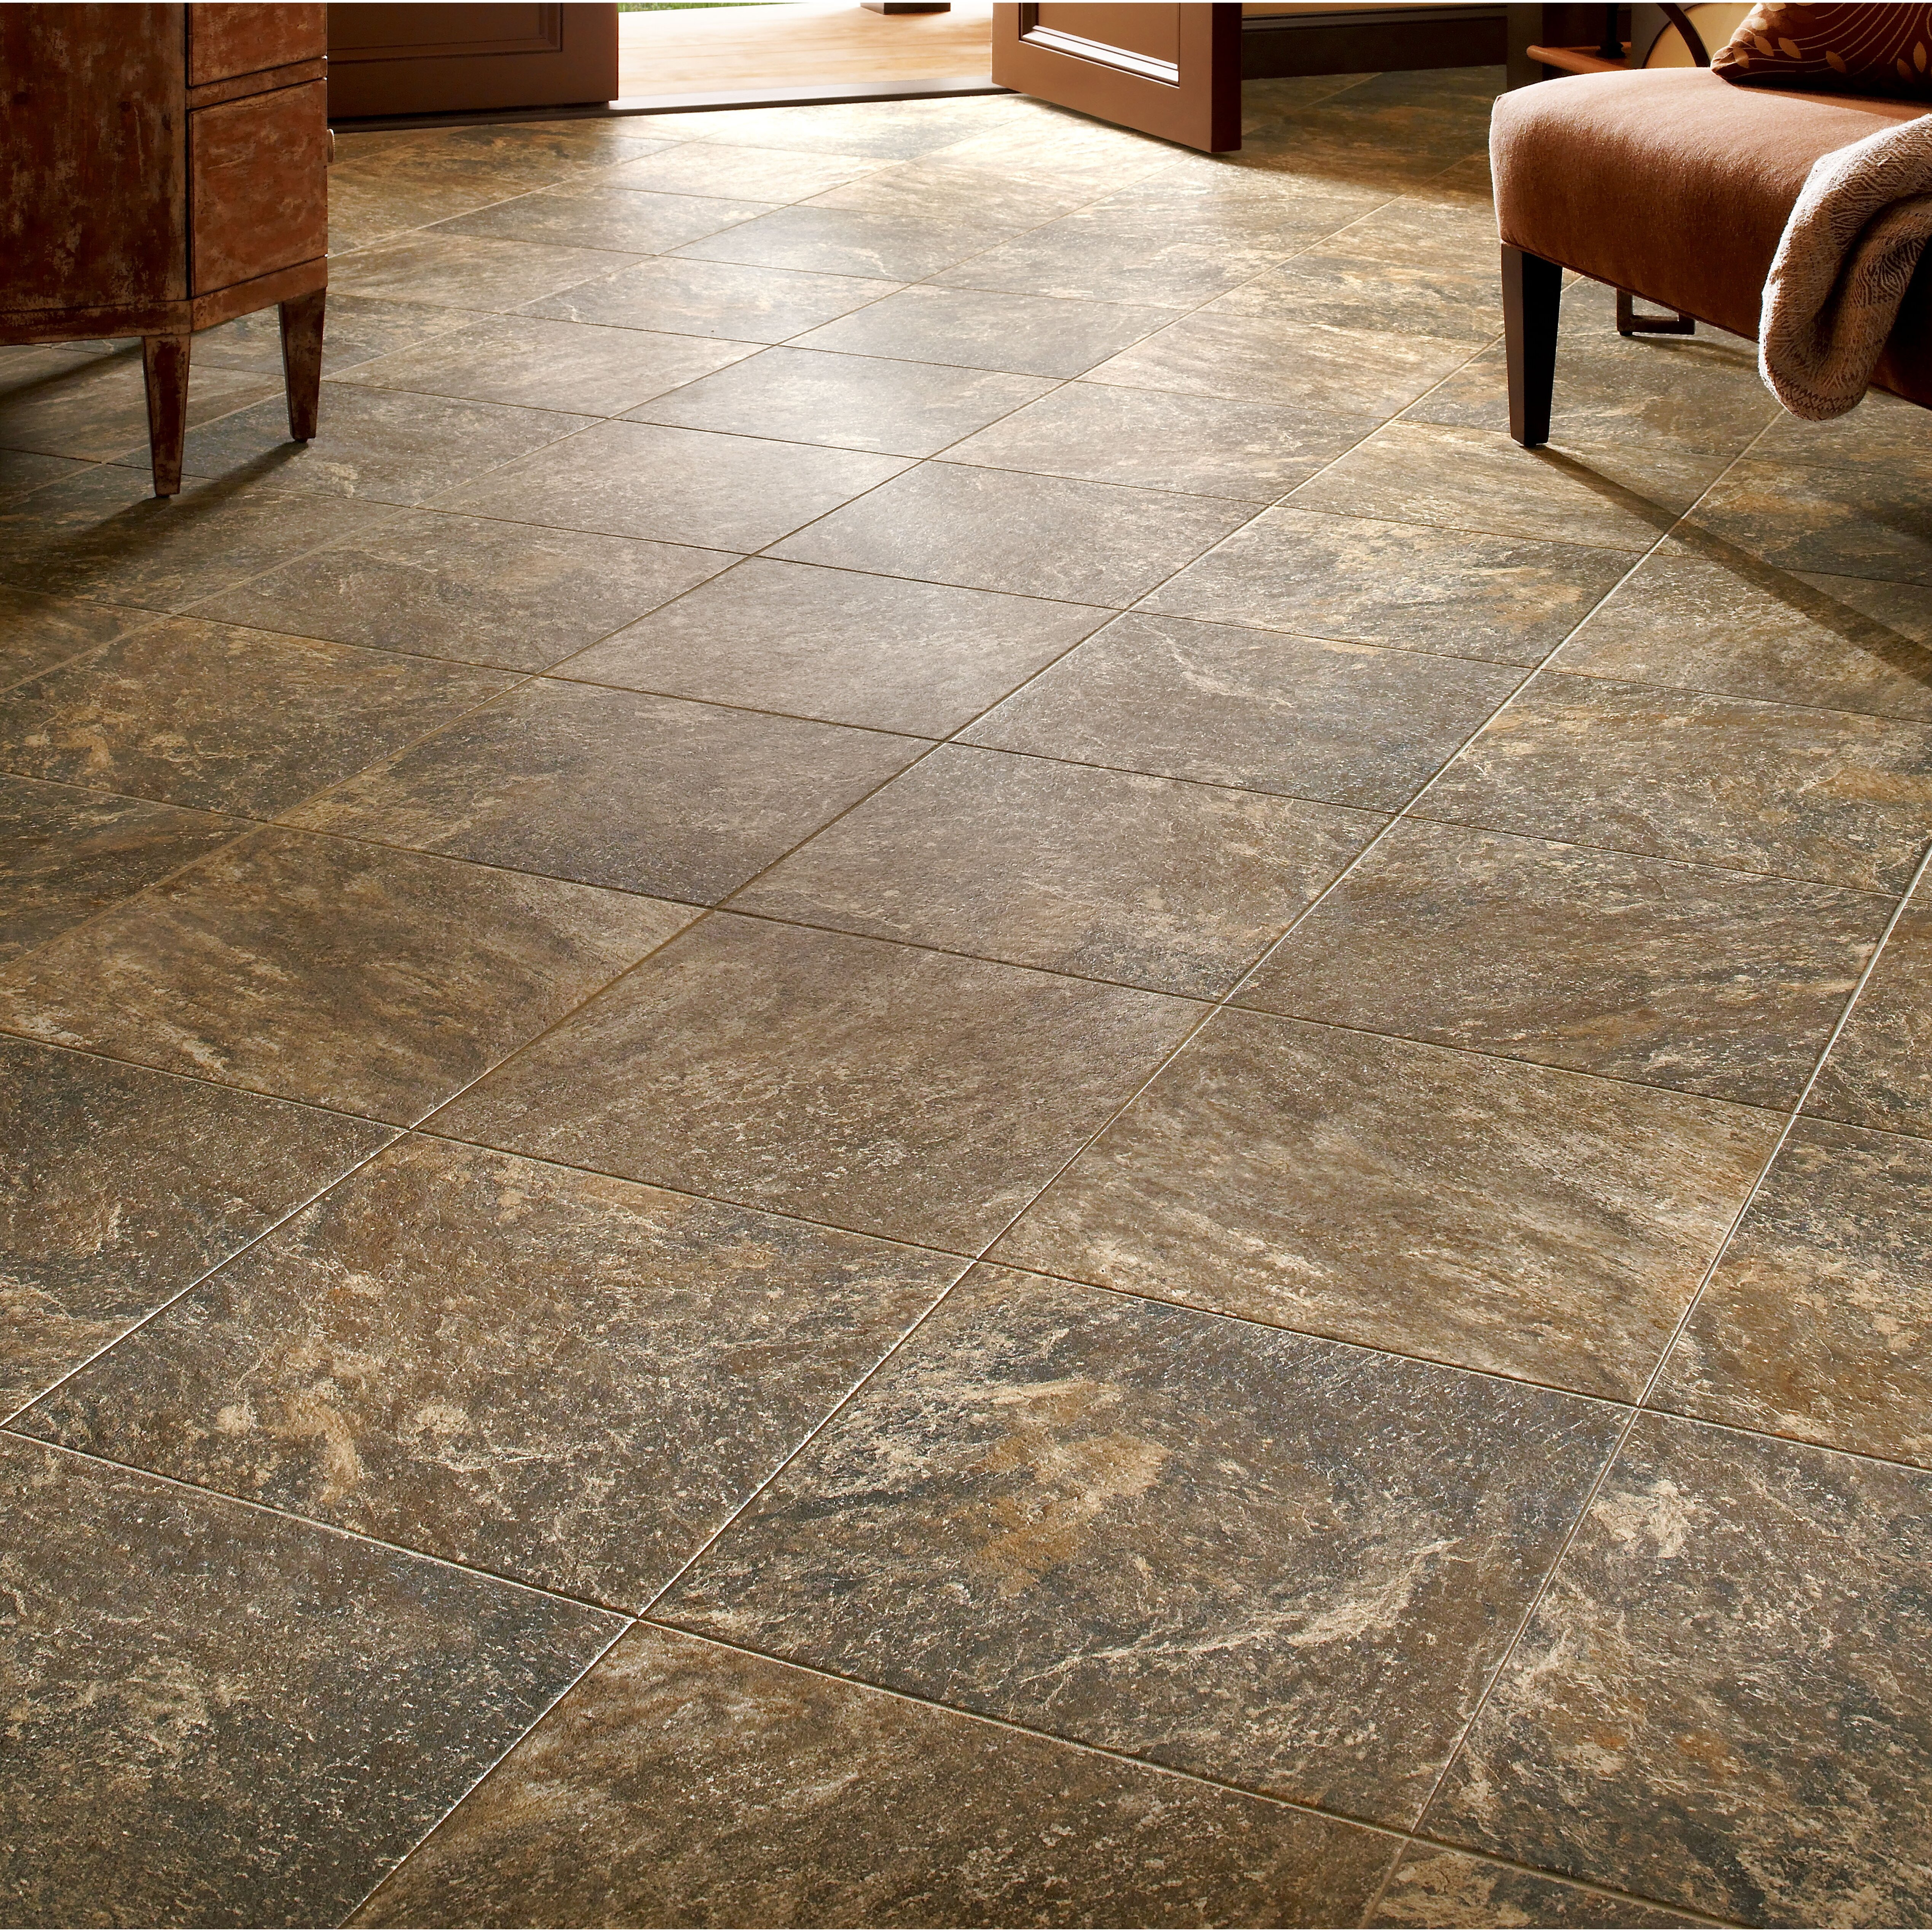 Luxury vinyl tile reviews - Luxury Vinyl Tile Reviews From Armstrong Flooring